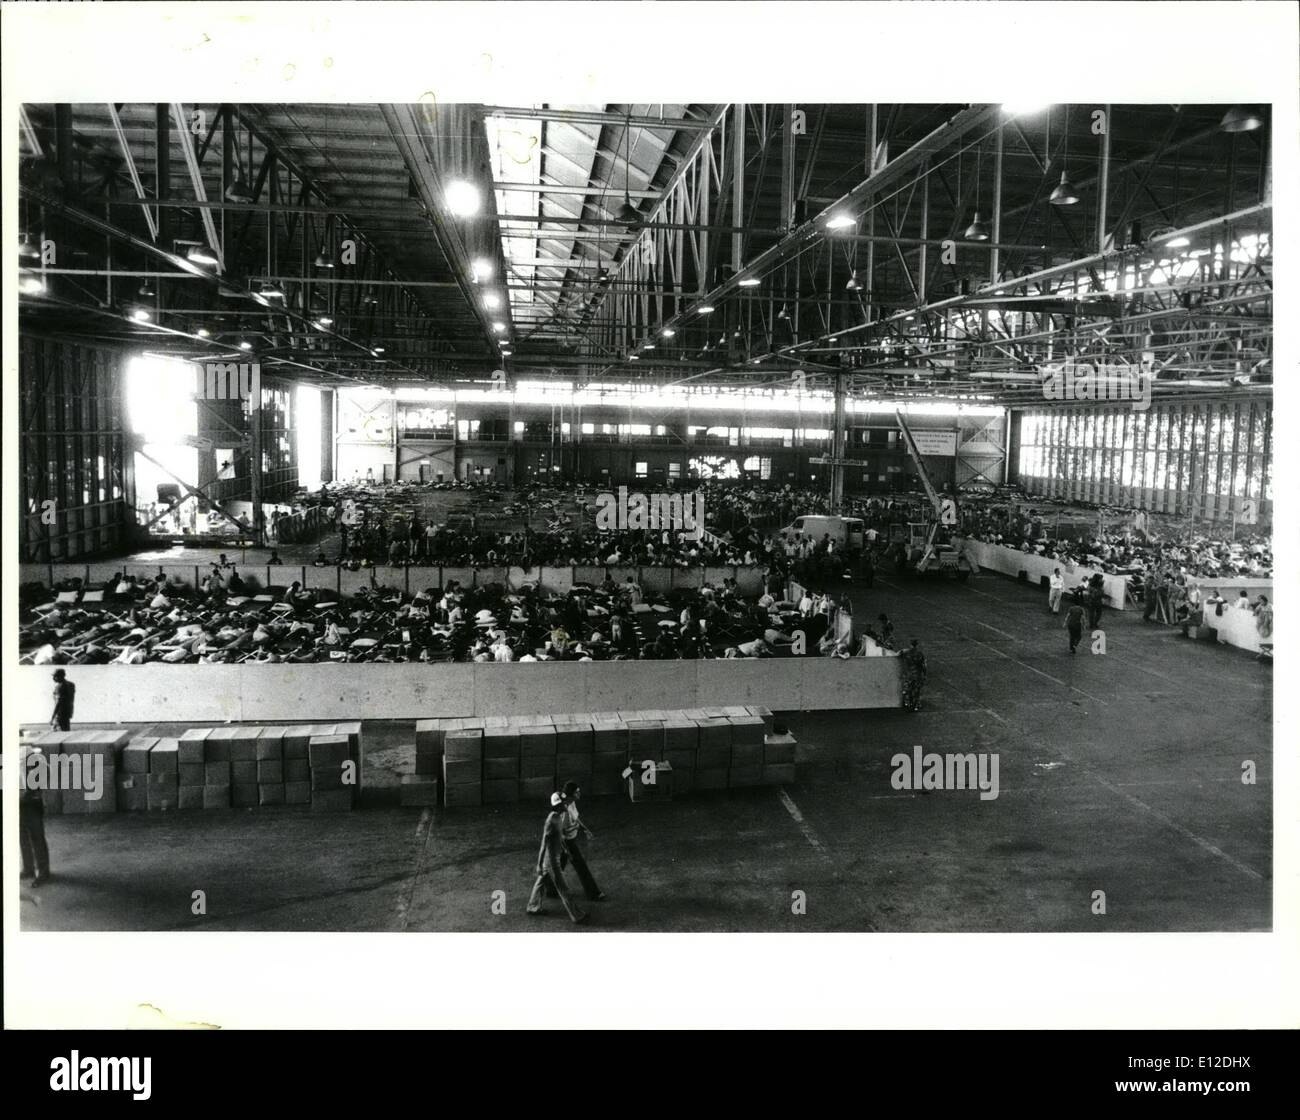 Dec. 15, 2011 - Interior of hanger used to house the newly arrived Cuban refugees at Key West until they could be transferred to other processing centers. - Stock Image